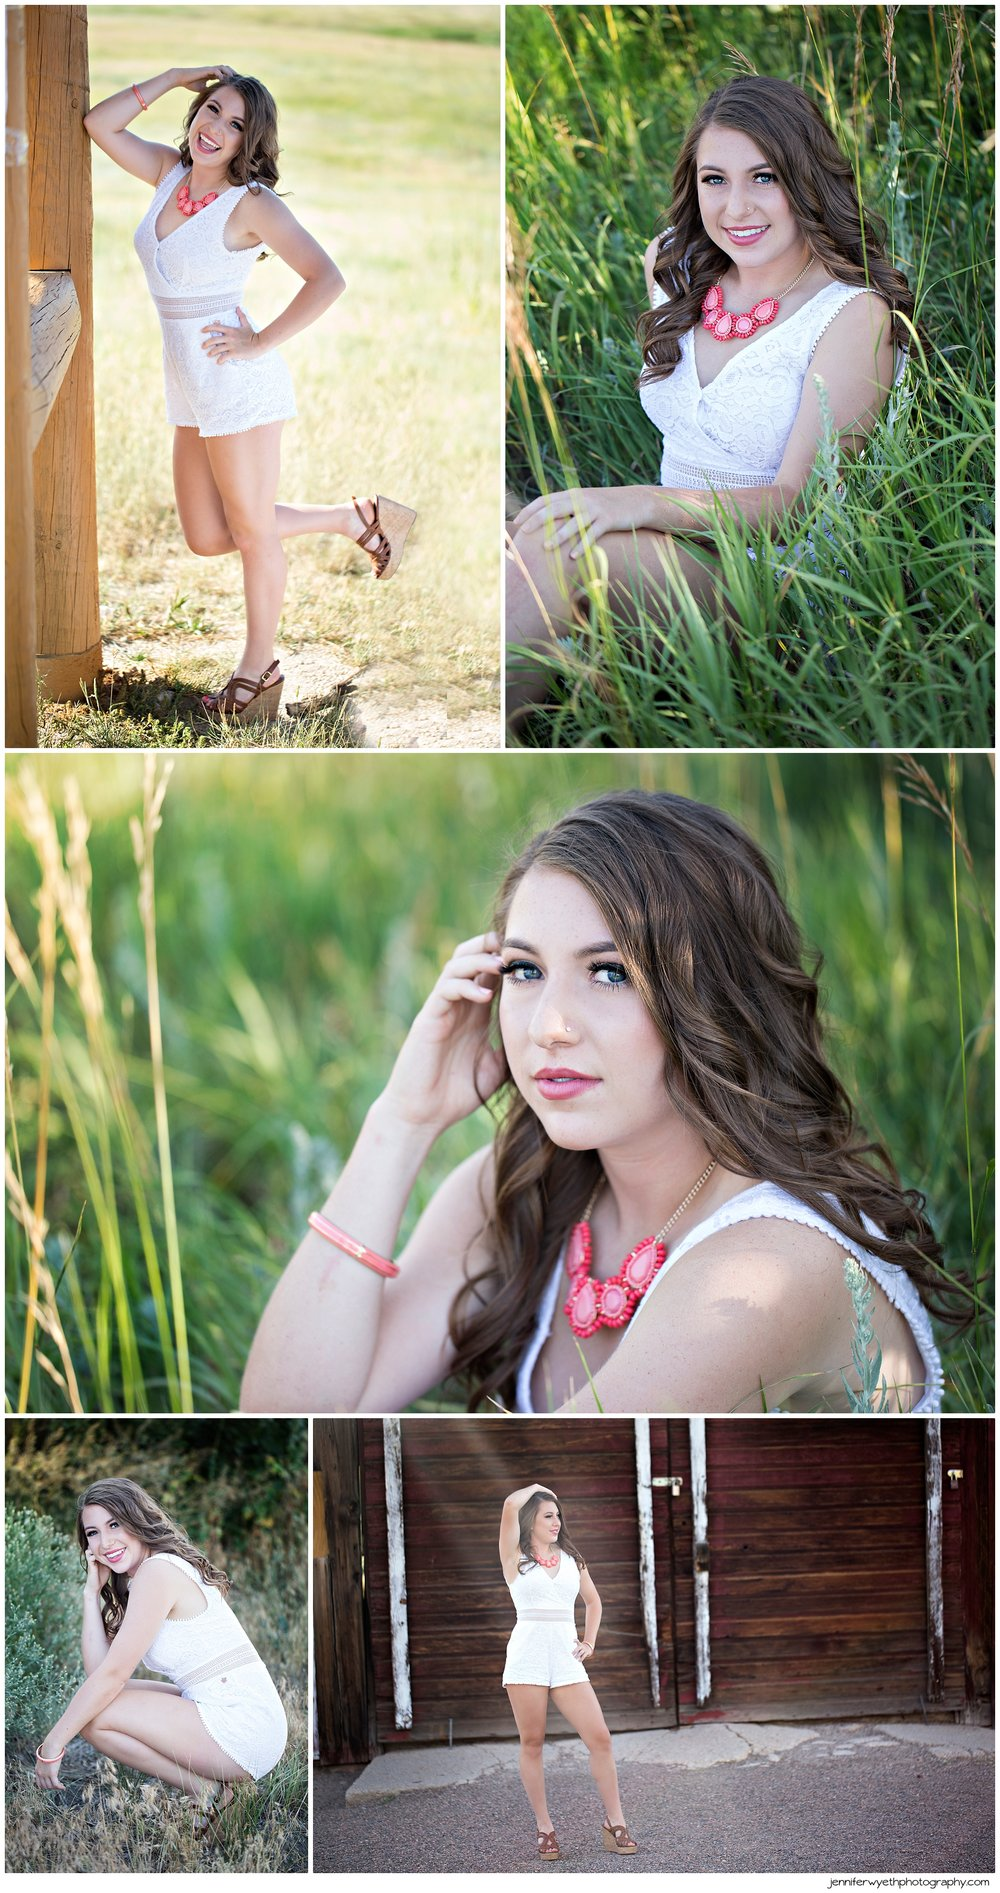 Jennifer-Wyeth-photography-senior-pictures-colorado-springs-photographer_0190.jpg